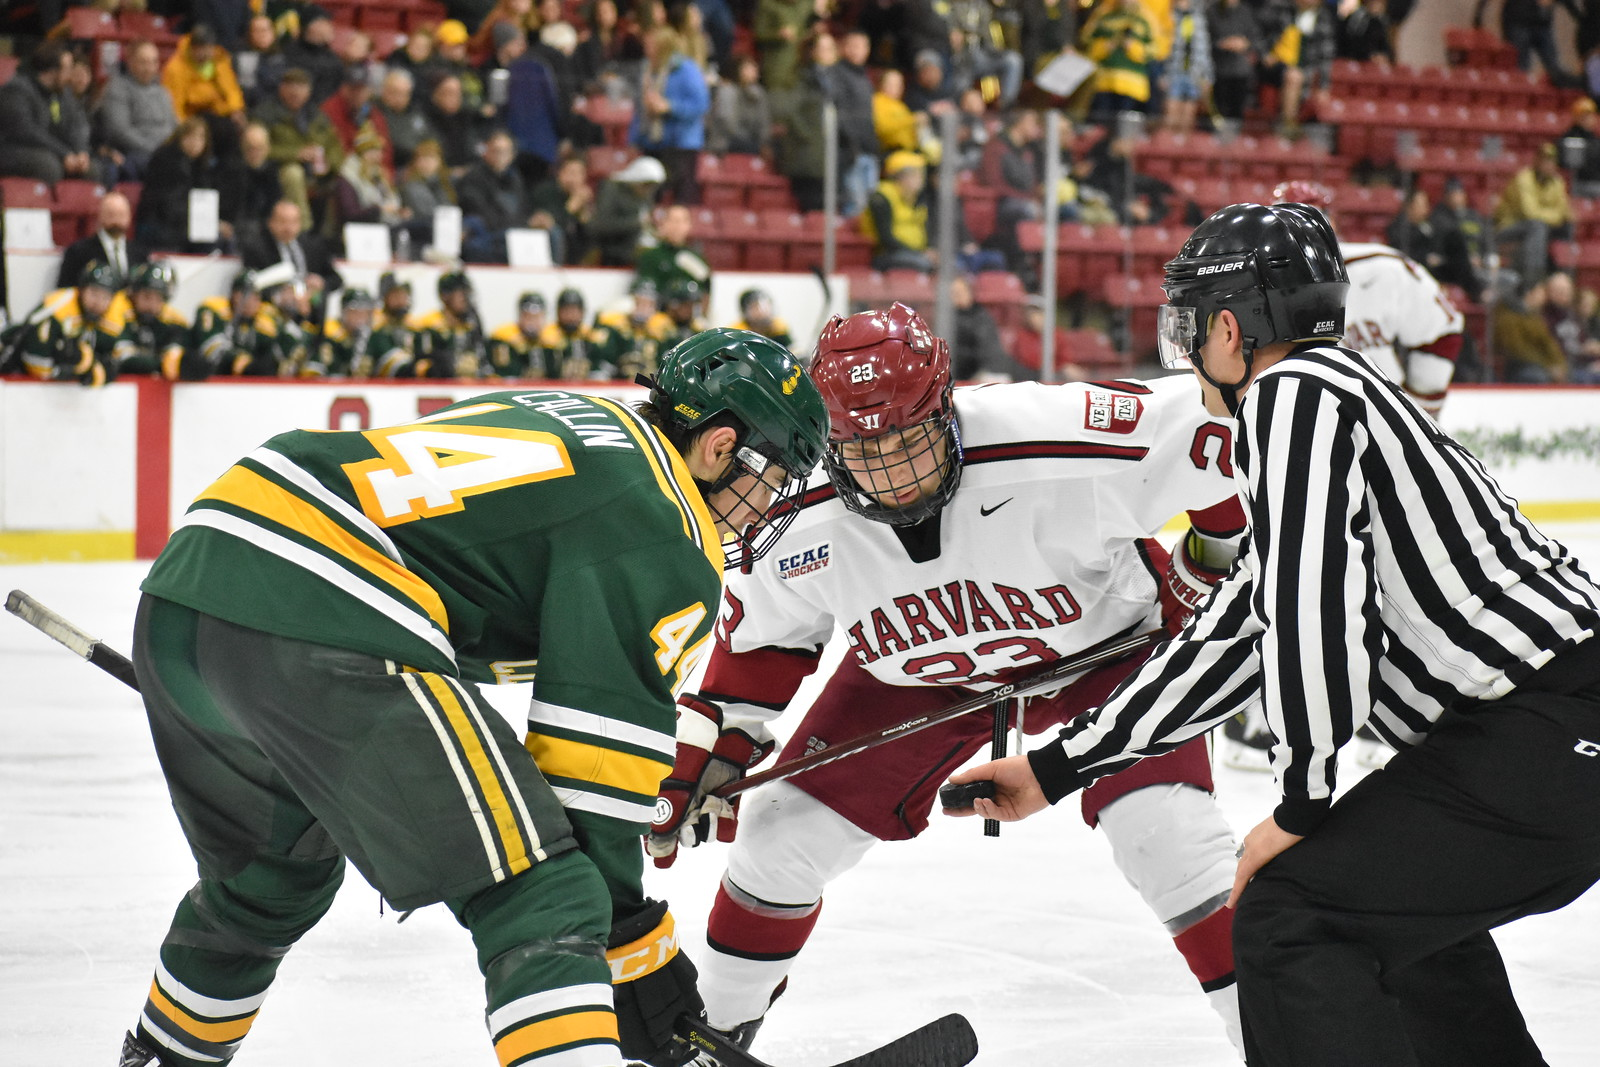 On Friday, the Crimson will look to avenge last year's ECAC semifinal heartbreak at the hands of the Golden Knights.